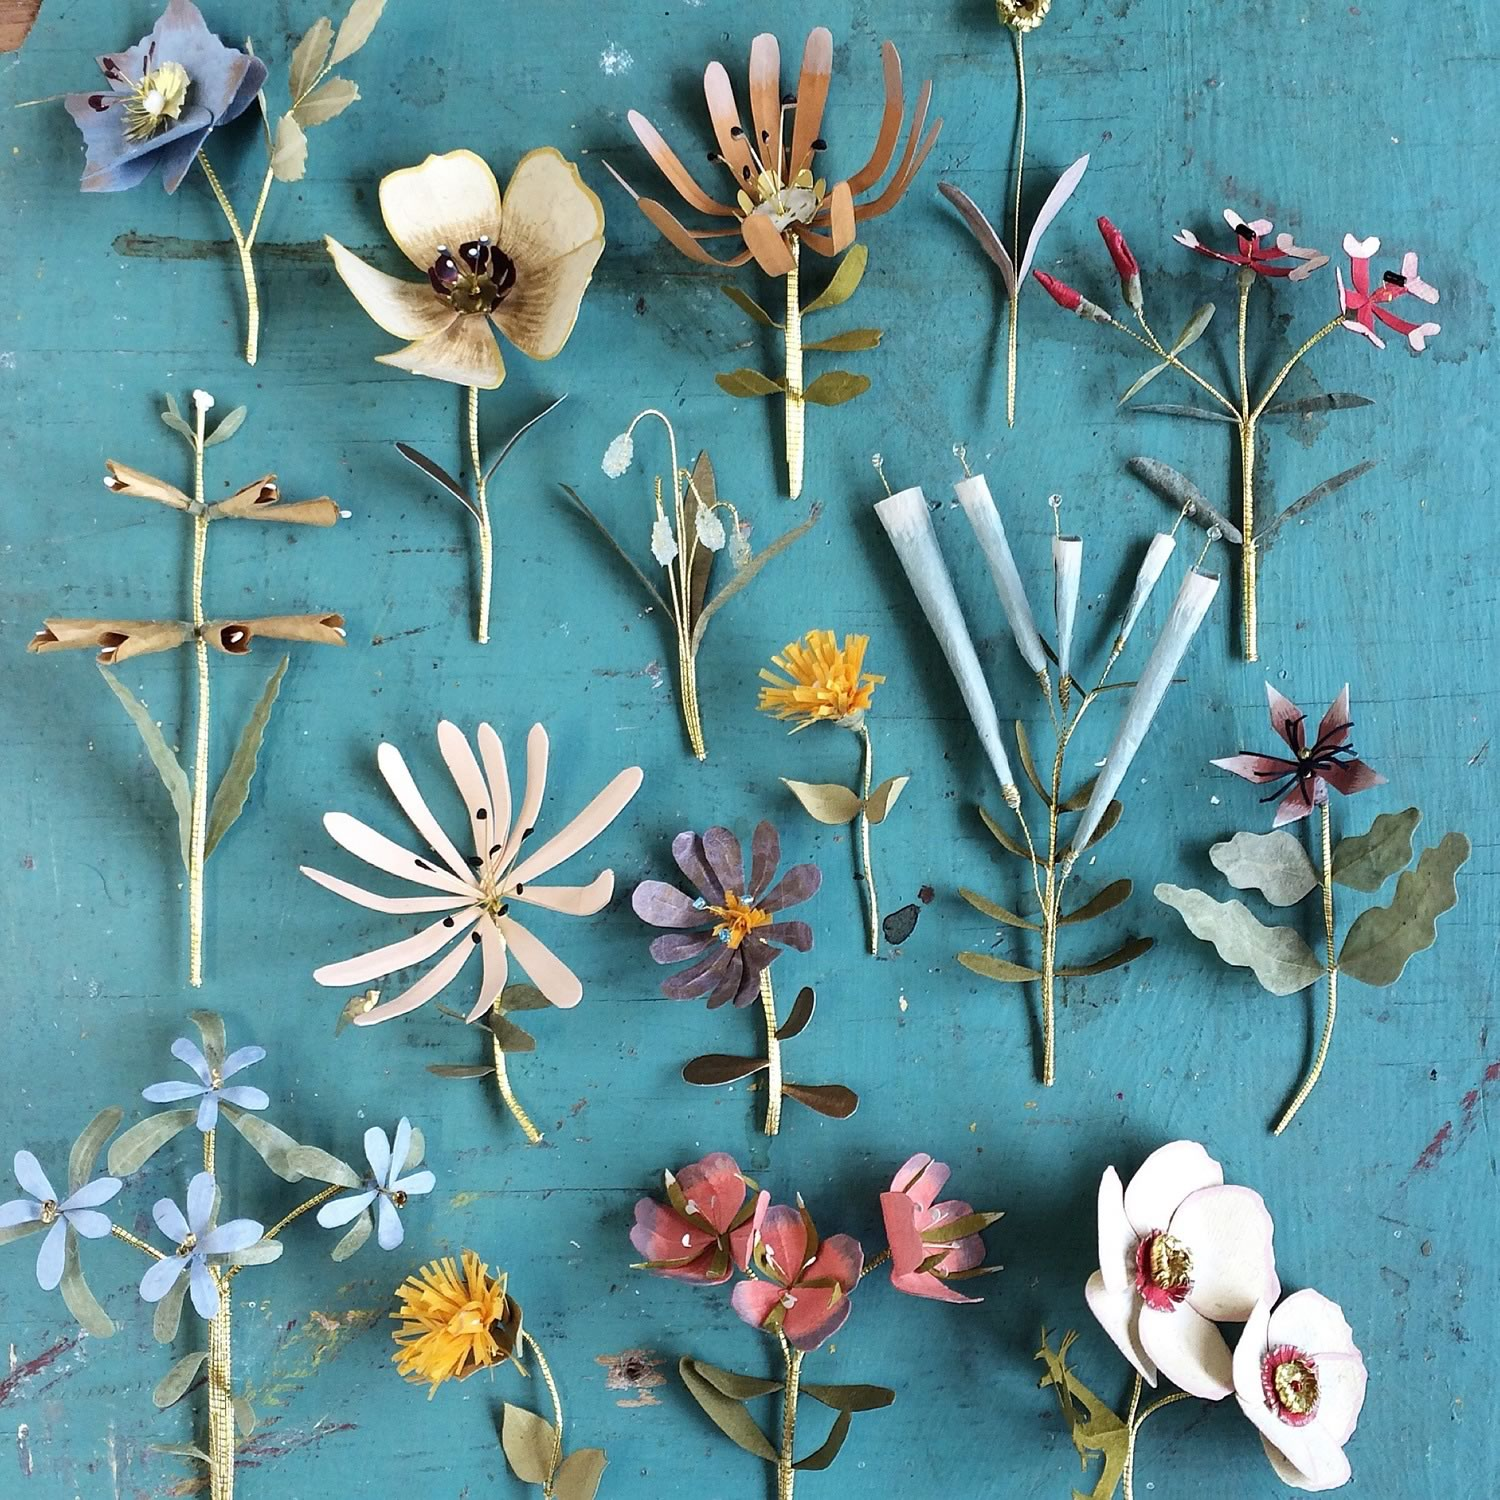 flowers made from paper by woodlucker